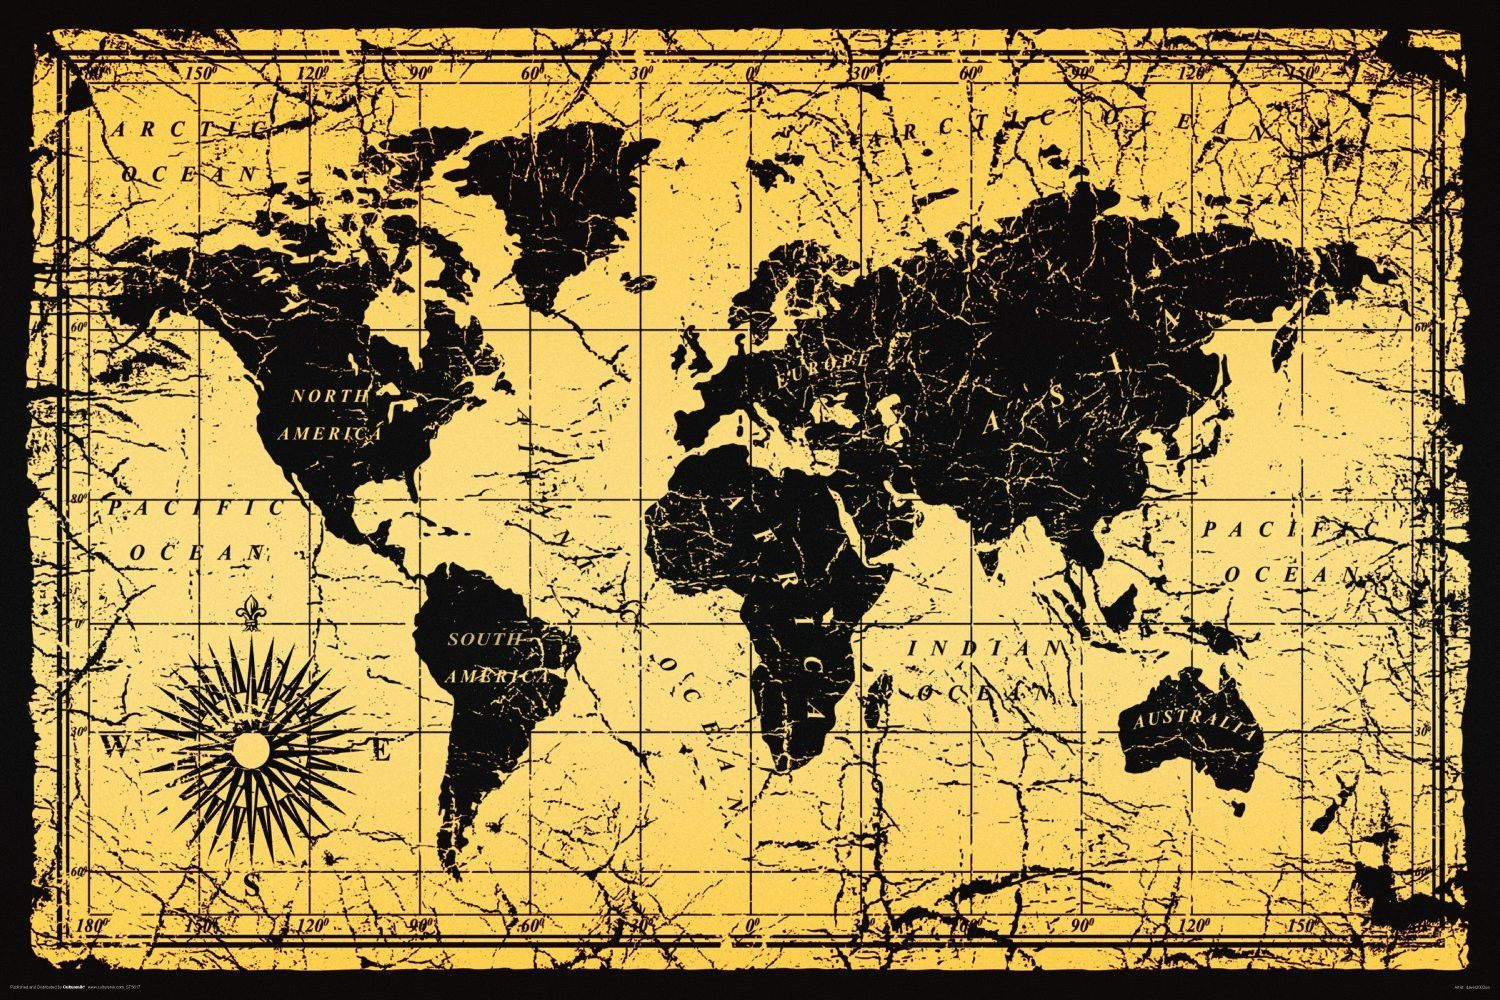 925 vintage style world map poster 24 x 36 antique geography 925 vintage style world map poster 24 x 36 antique geography old 5617 ebay collectibles gumiabroncs Gallery